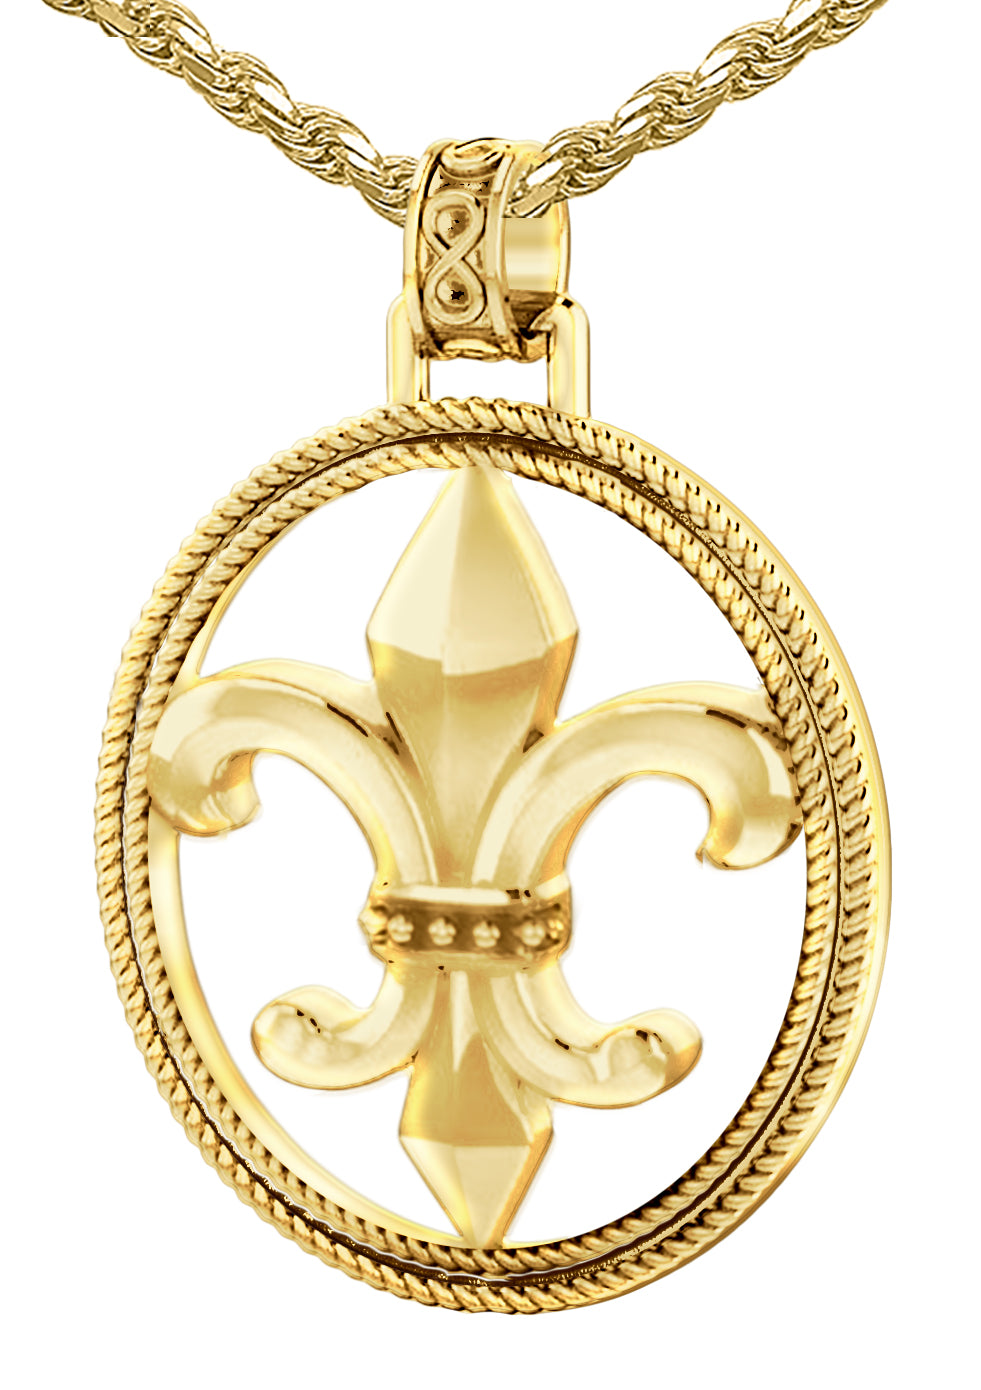 Fleur De Lis Necklace - Gold Pendant In Braided Style